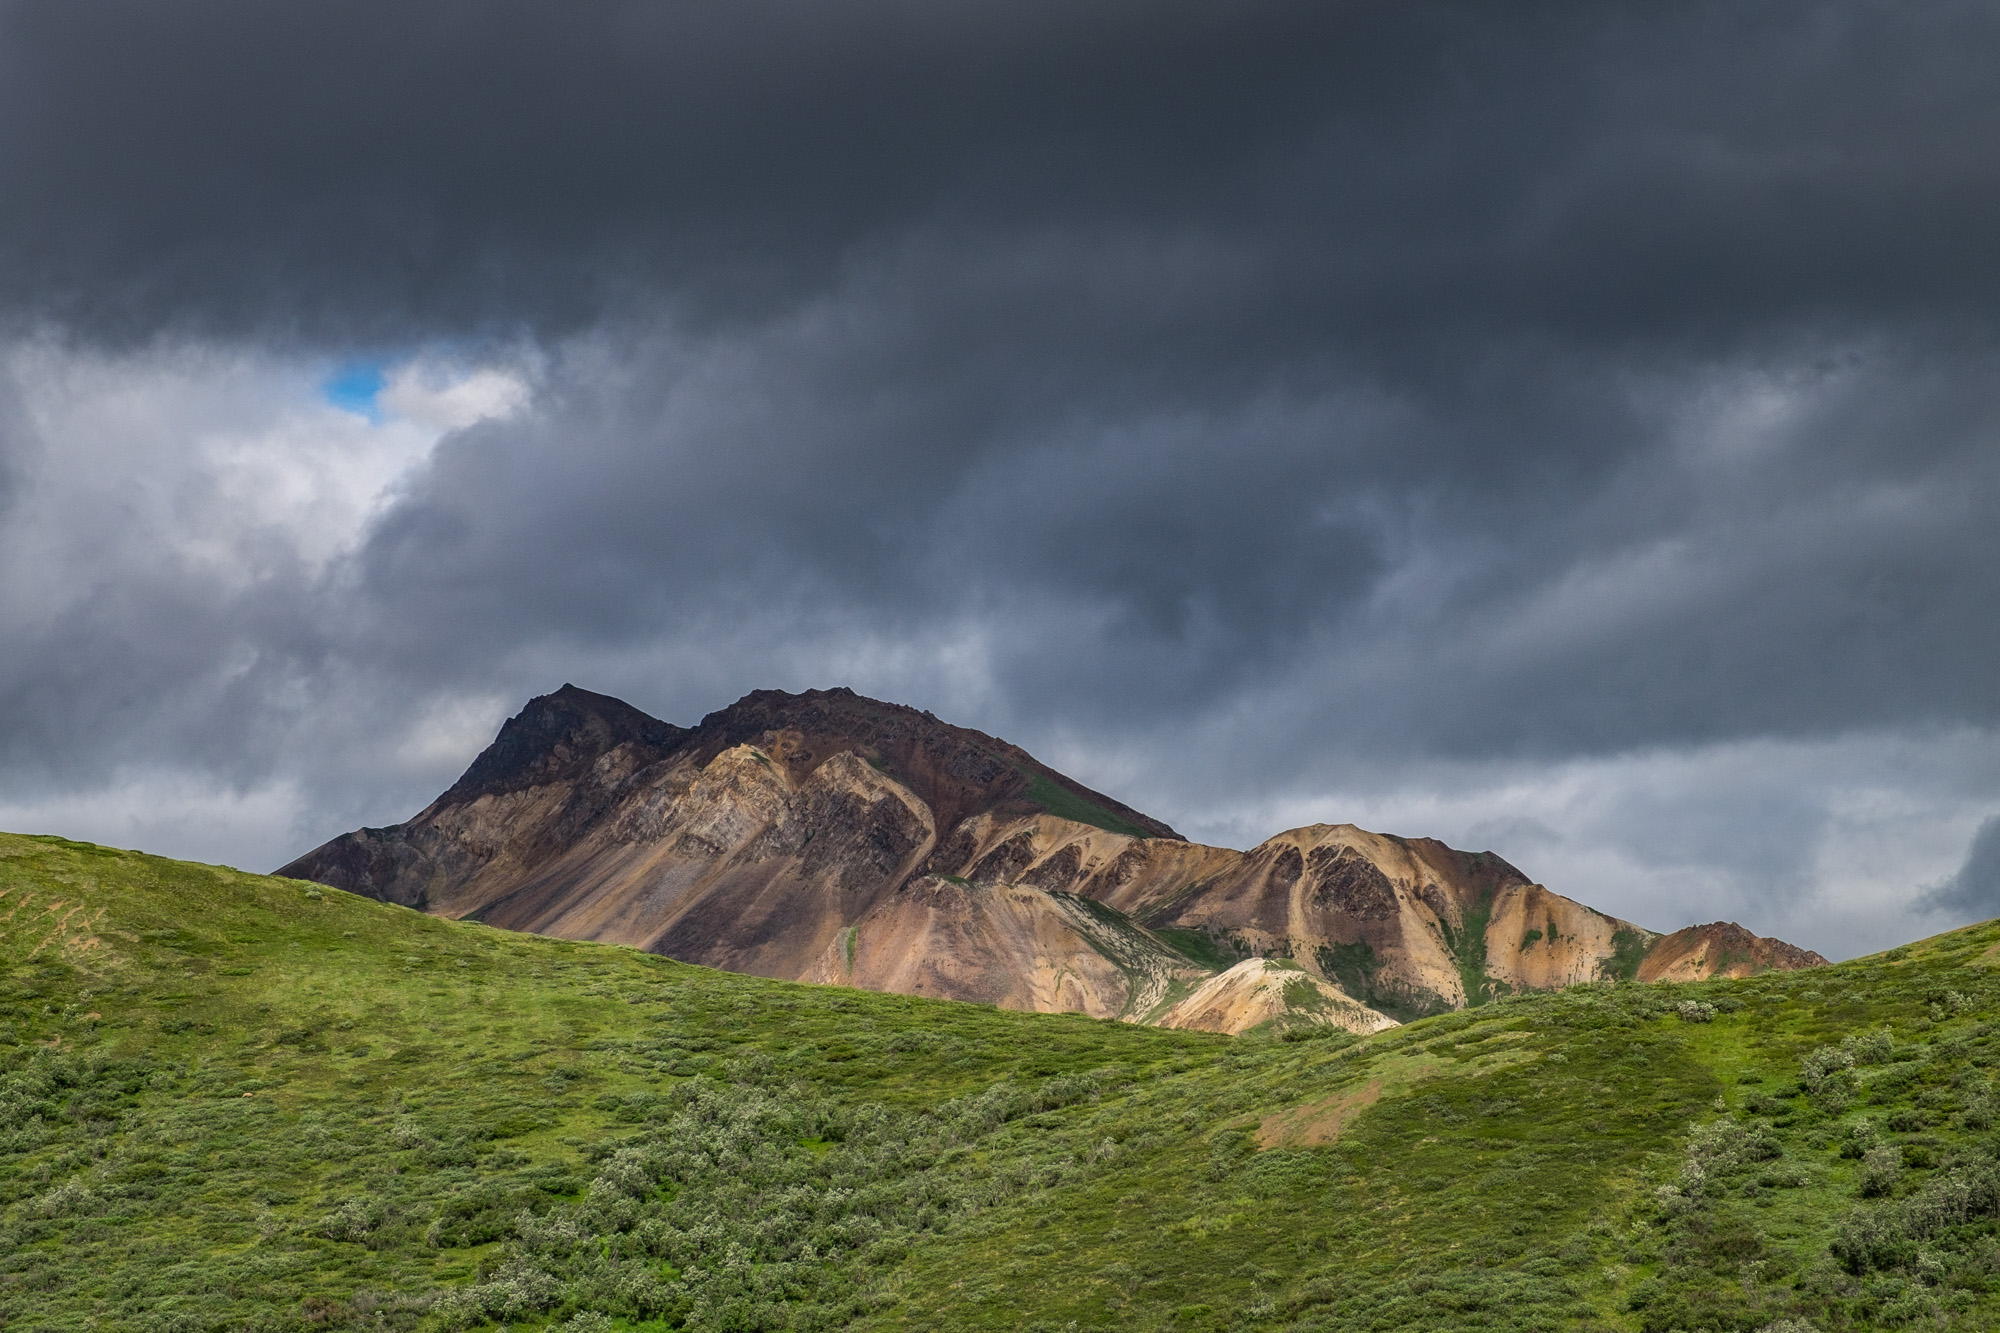 Denali National Park - 013.jpg